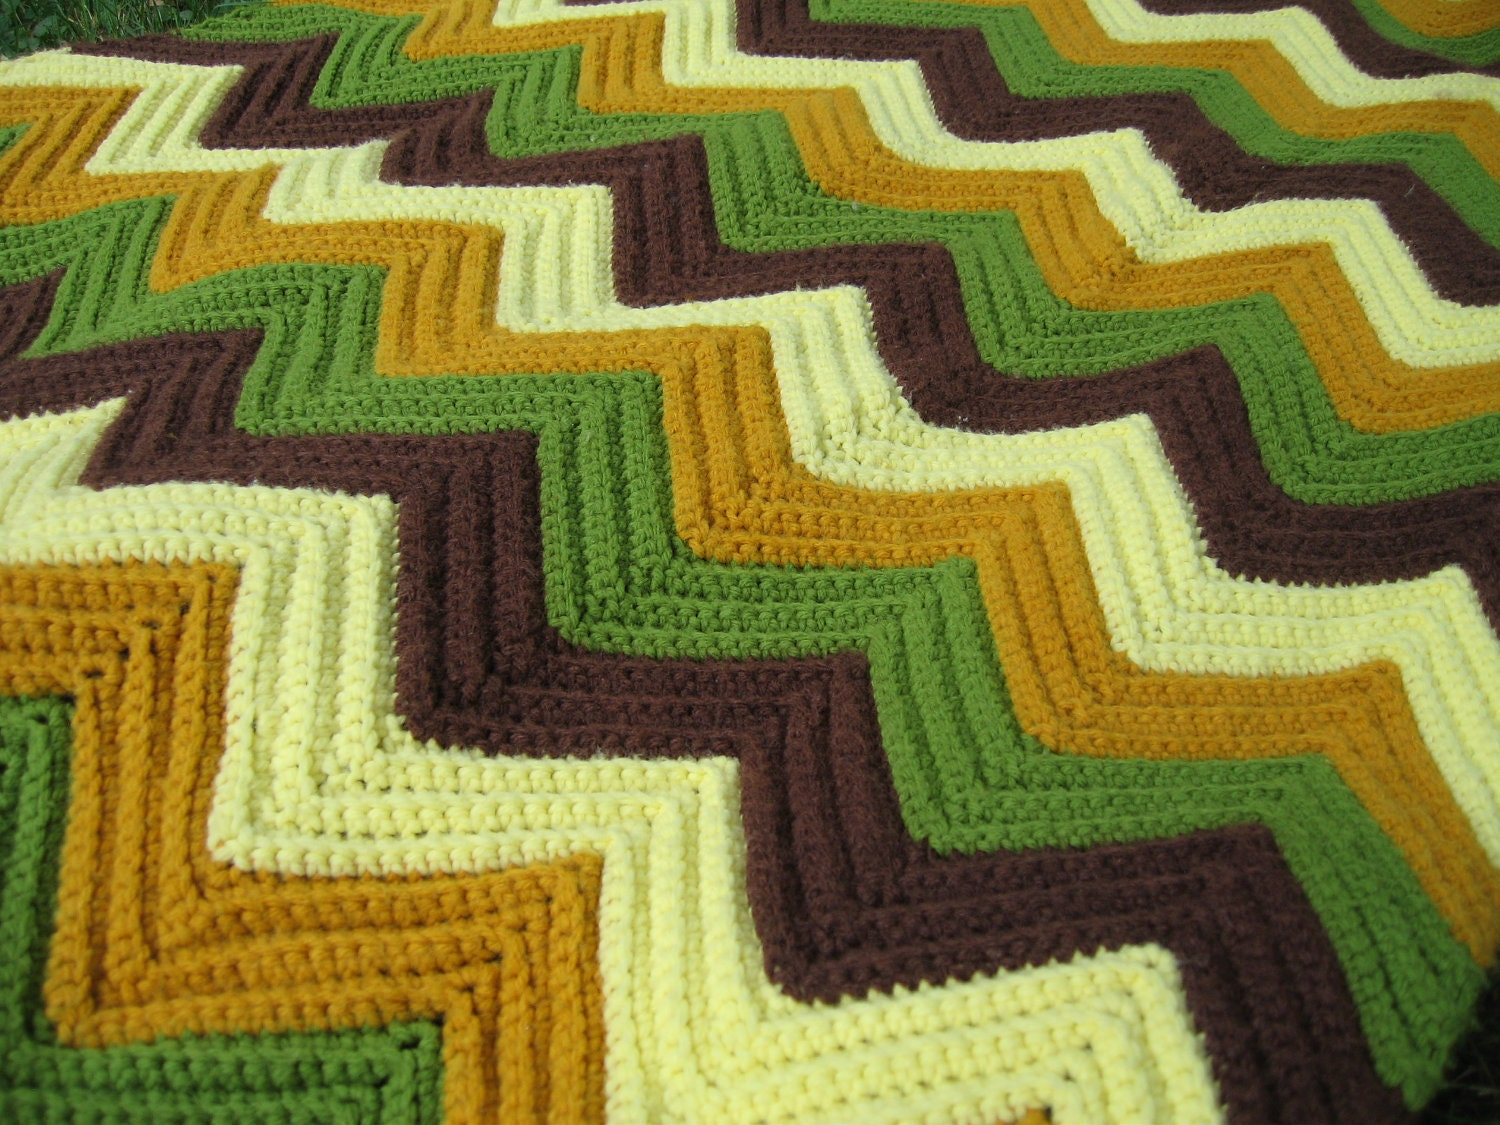 Green Crochet Afghan Pattern : Vintage Crochet Afghan Blanket Zig-Zag Pattern Green Brown